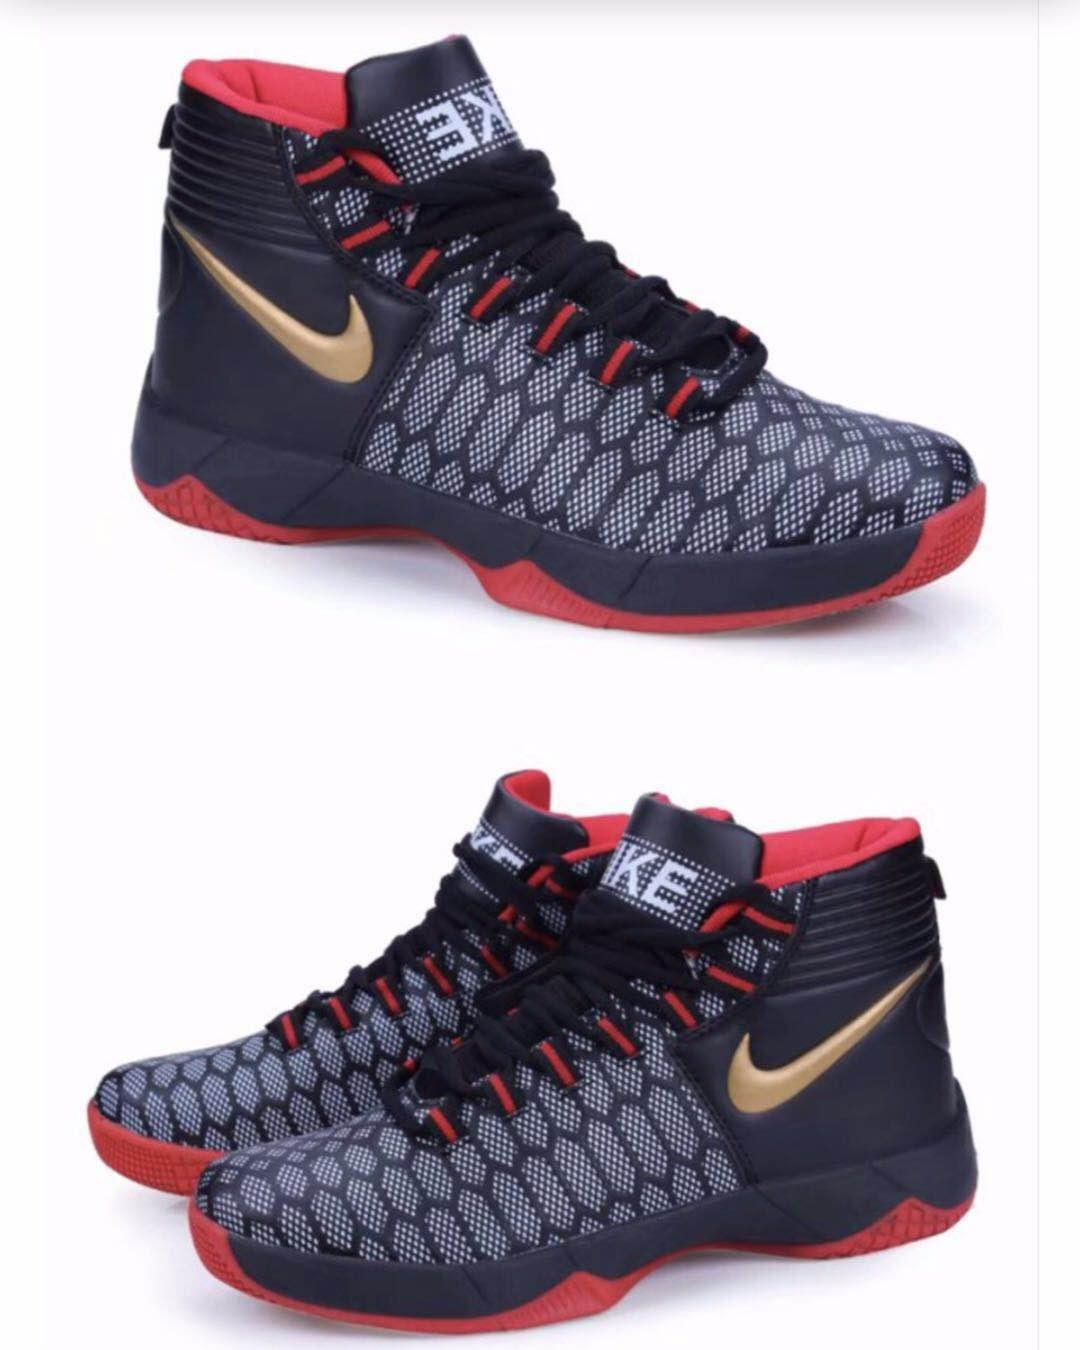 low priced b4700 00648 NIKE Kevin Durant 10 KD 10 High Cut Basketball shoes For Men EUR SIZE  41-42-43-44-45 1058 # Black red